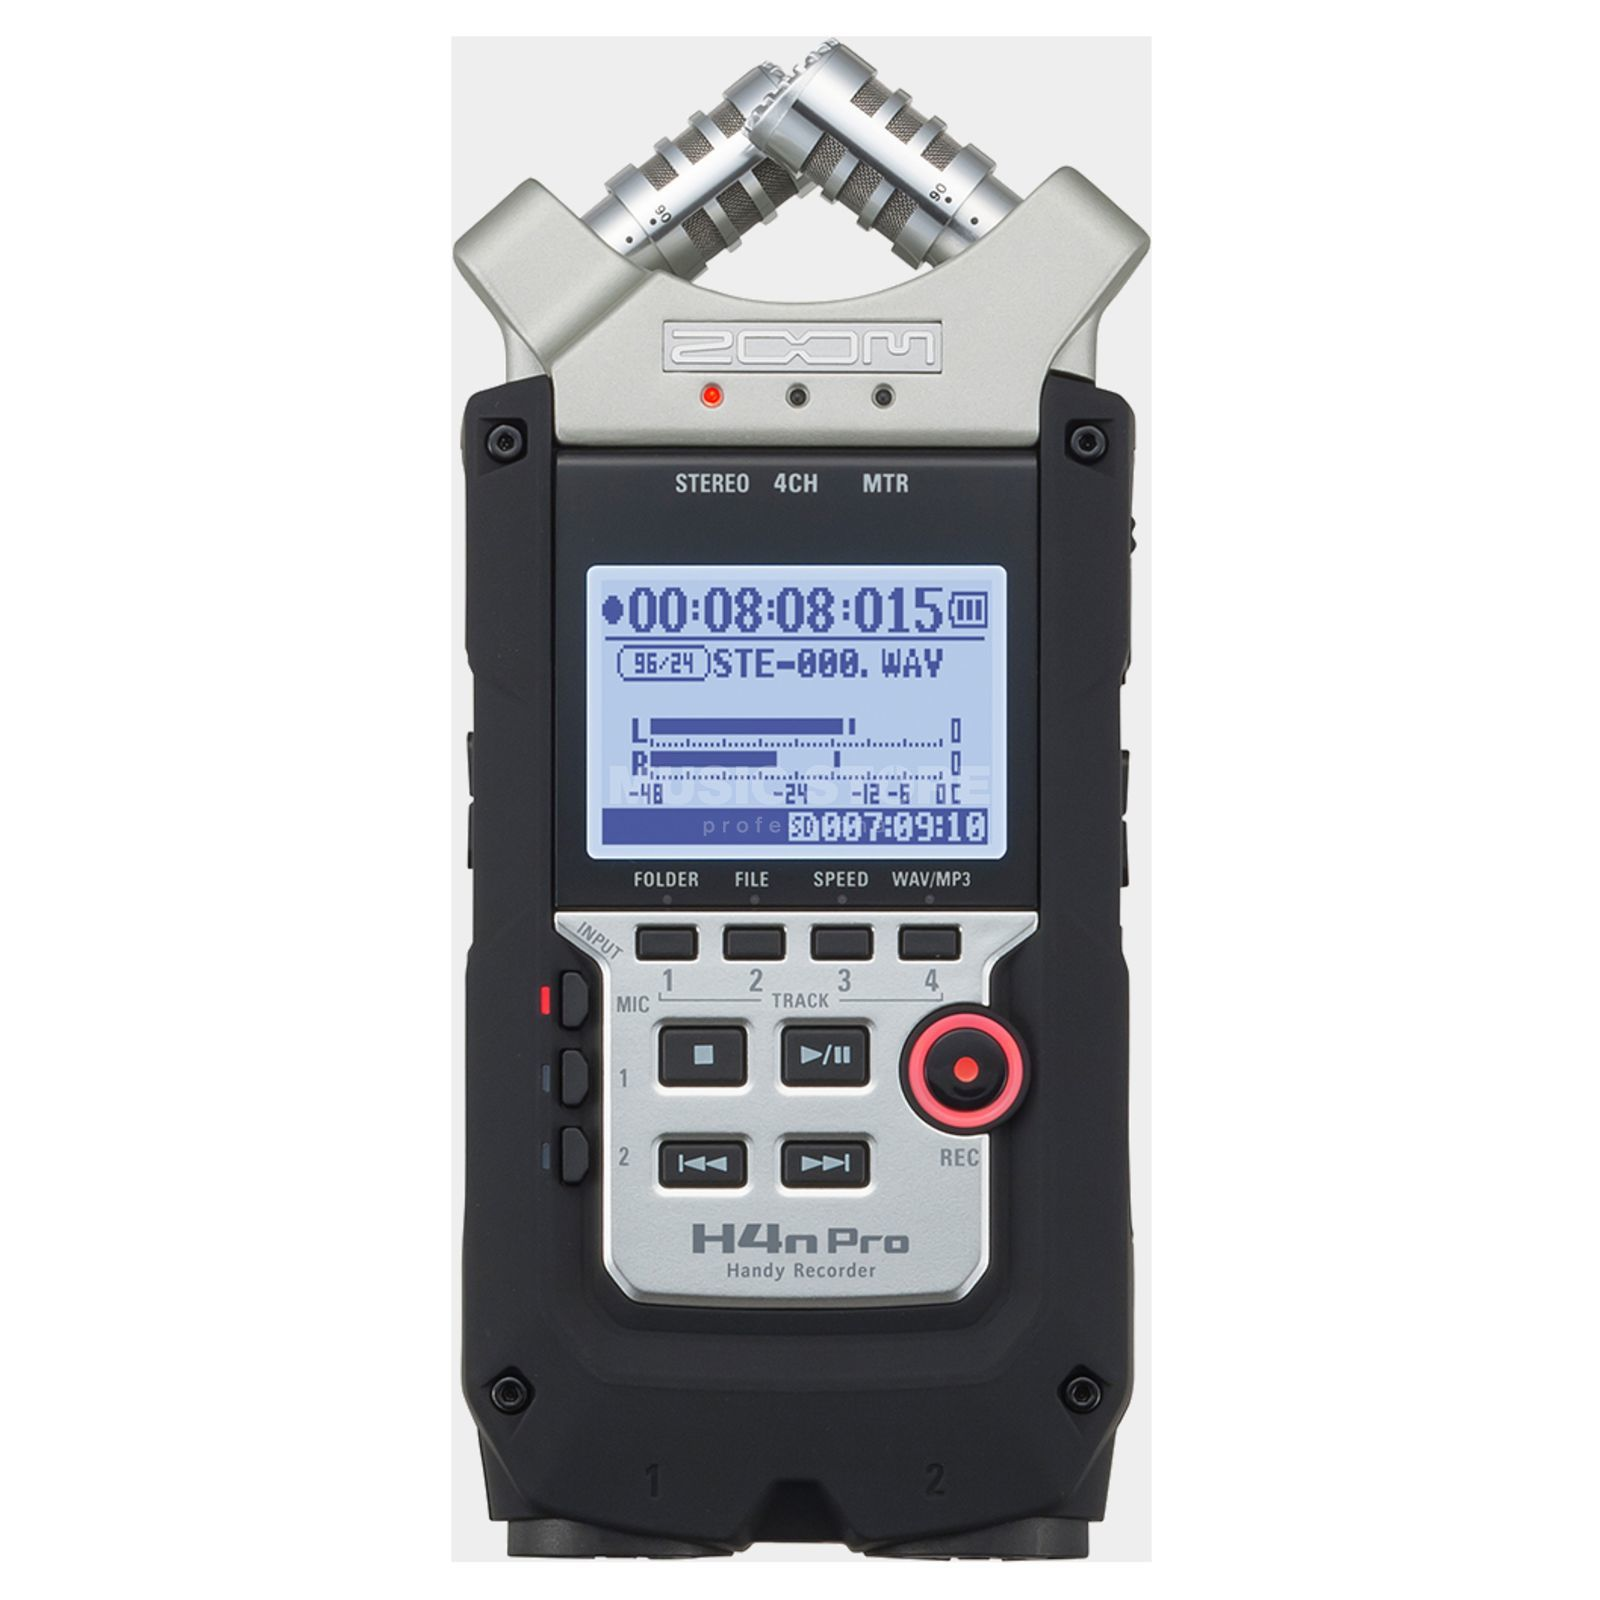 Zoom H4n Pro mobiler Recorder Product Image